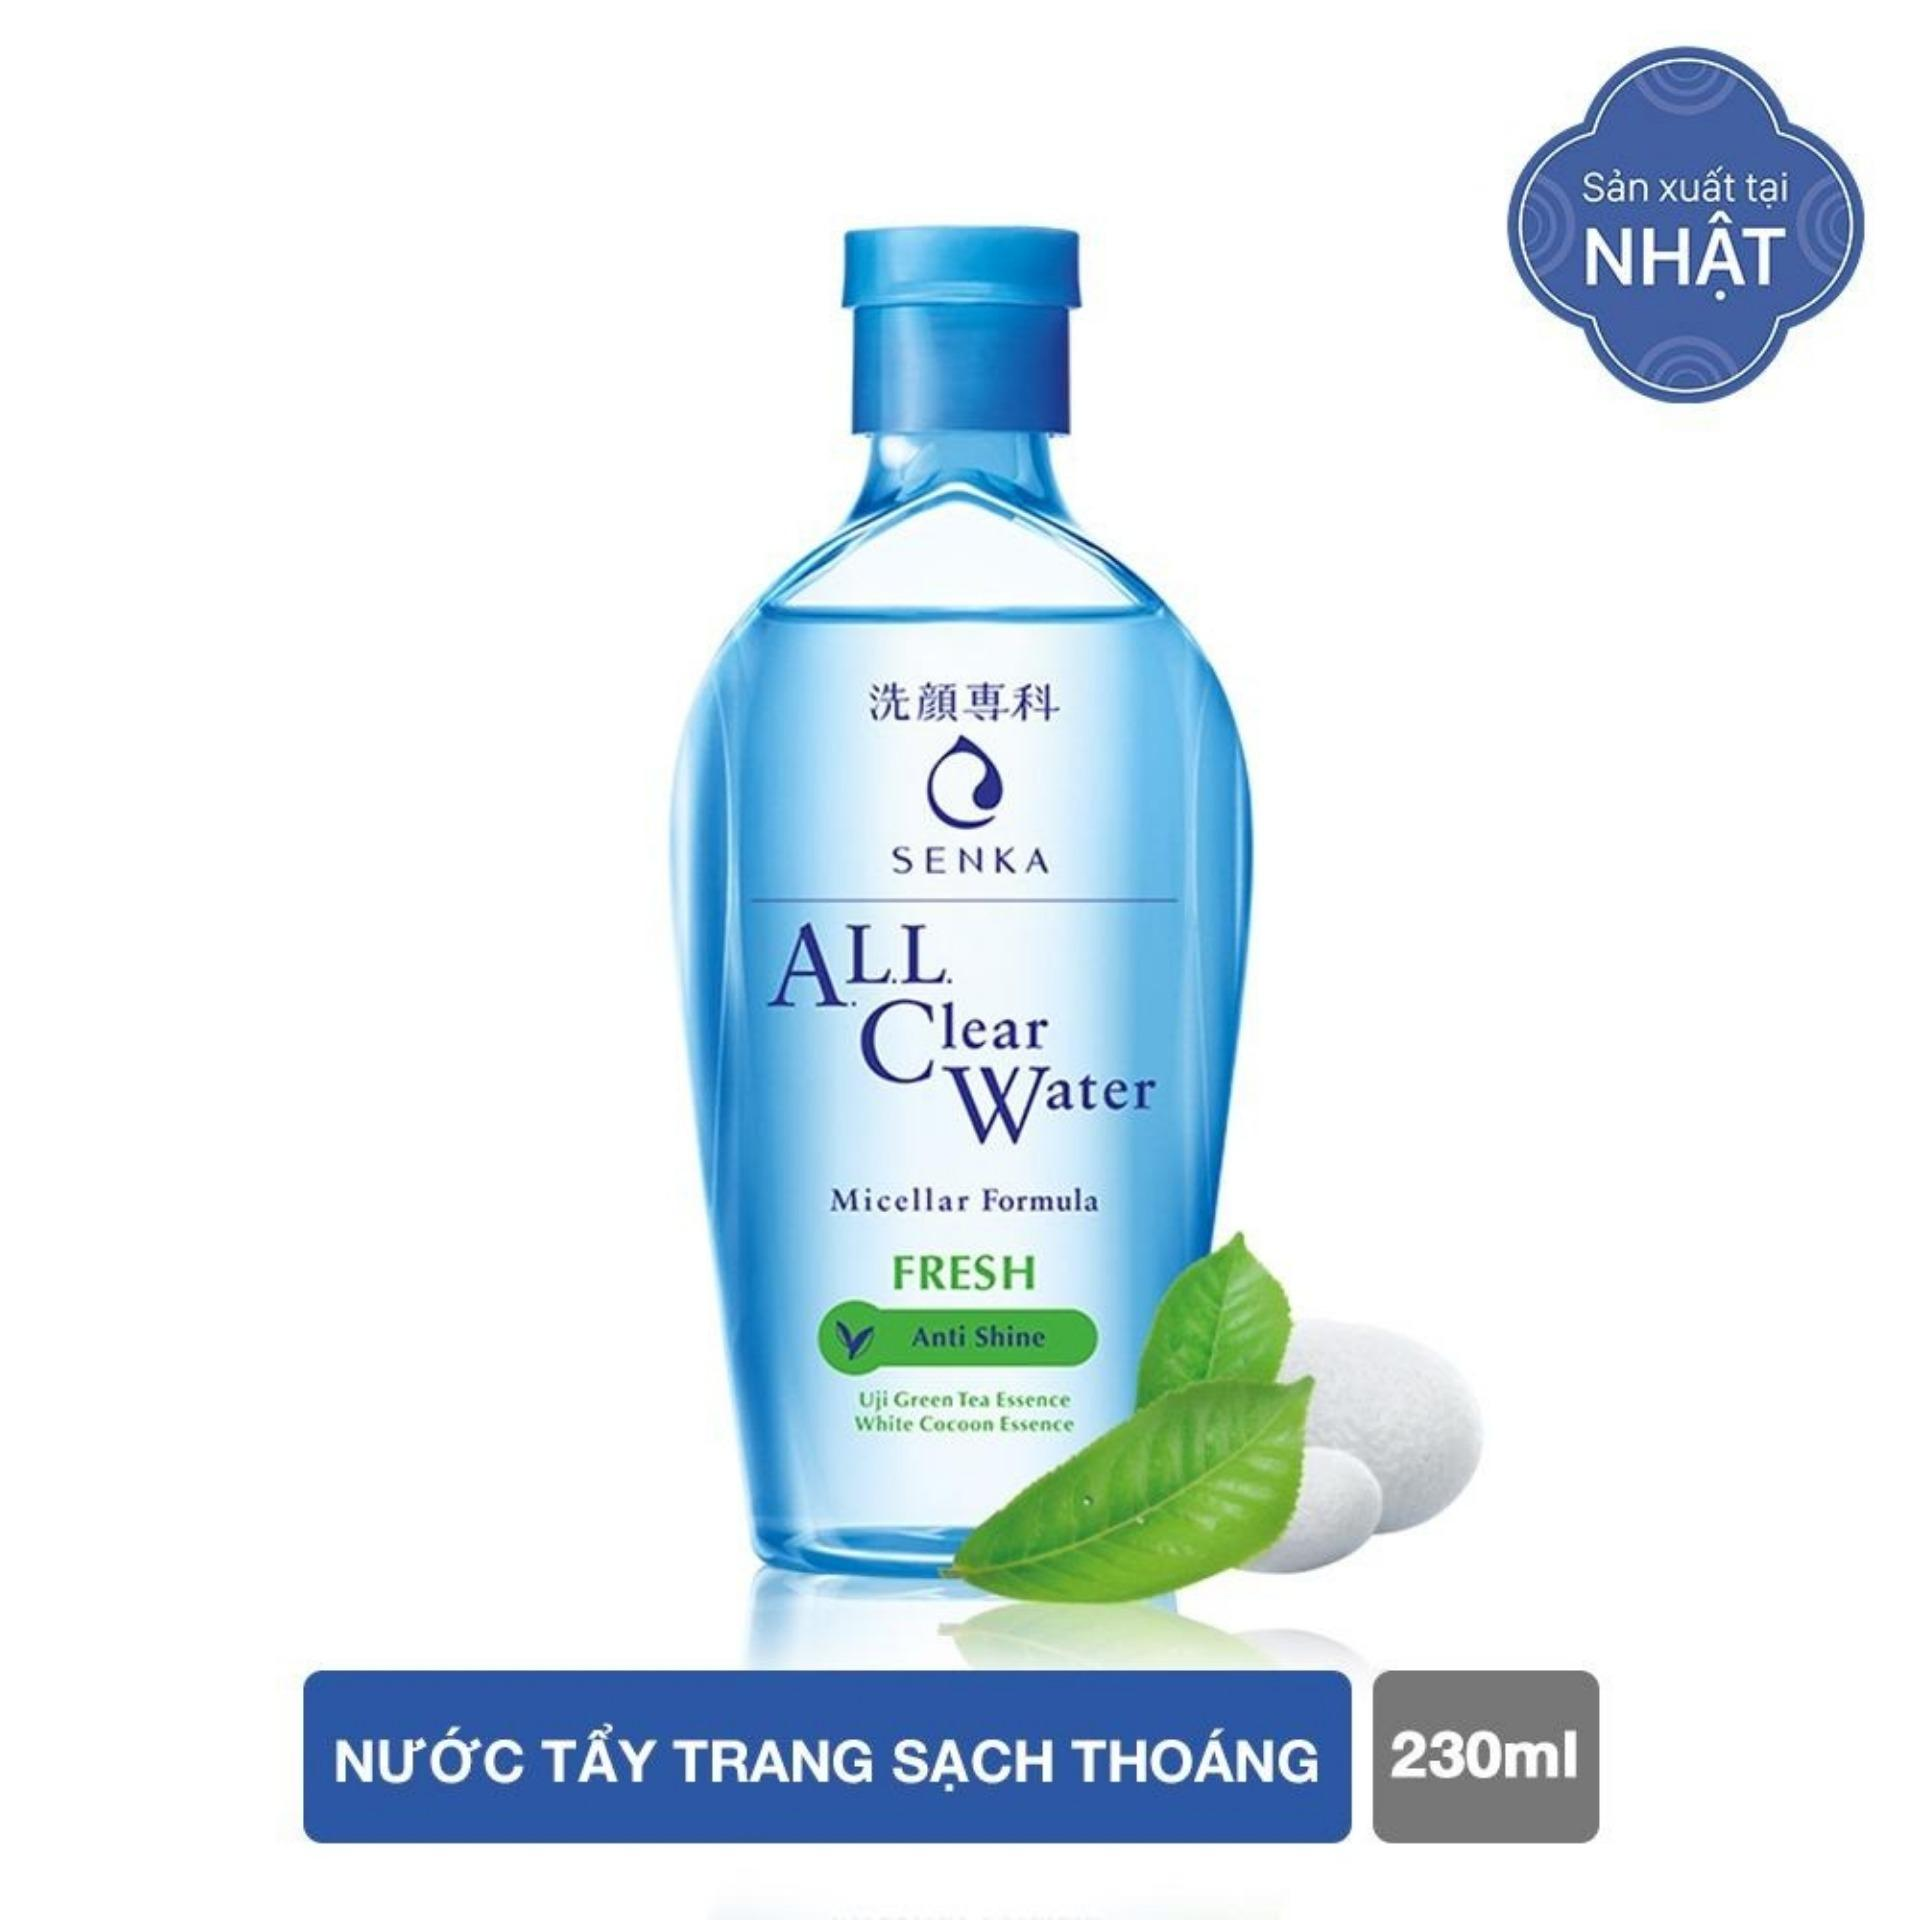 Nước tẩy trang Senka All Clear Water Miceller Formula Fresh 230ml (code 15288)